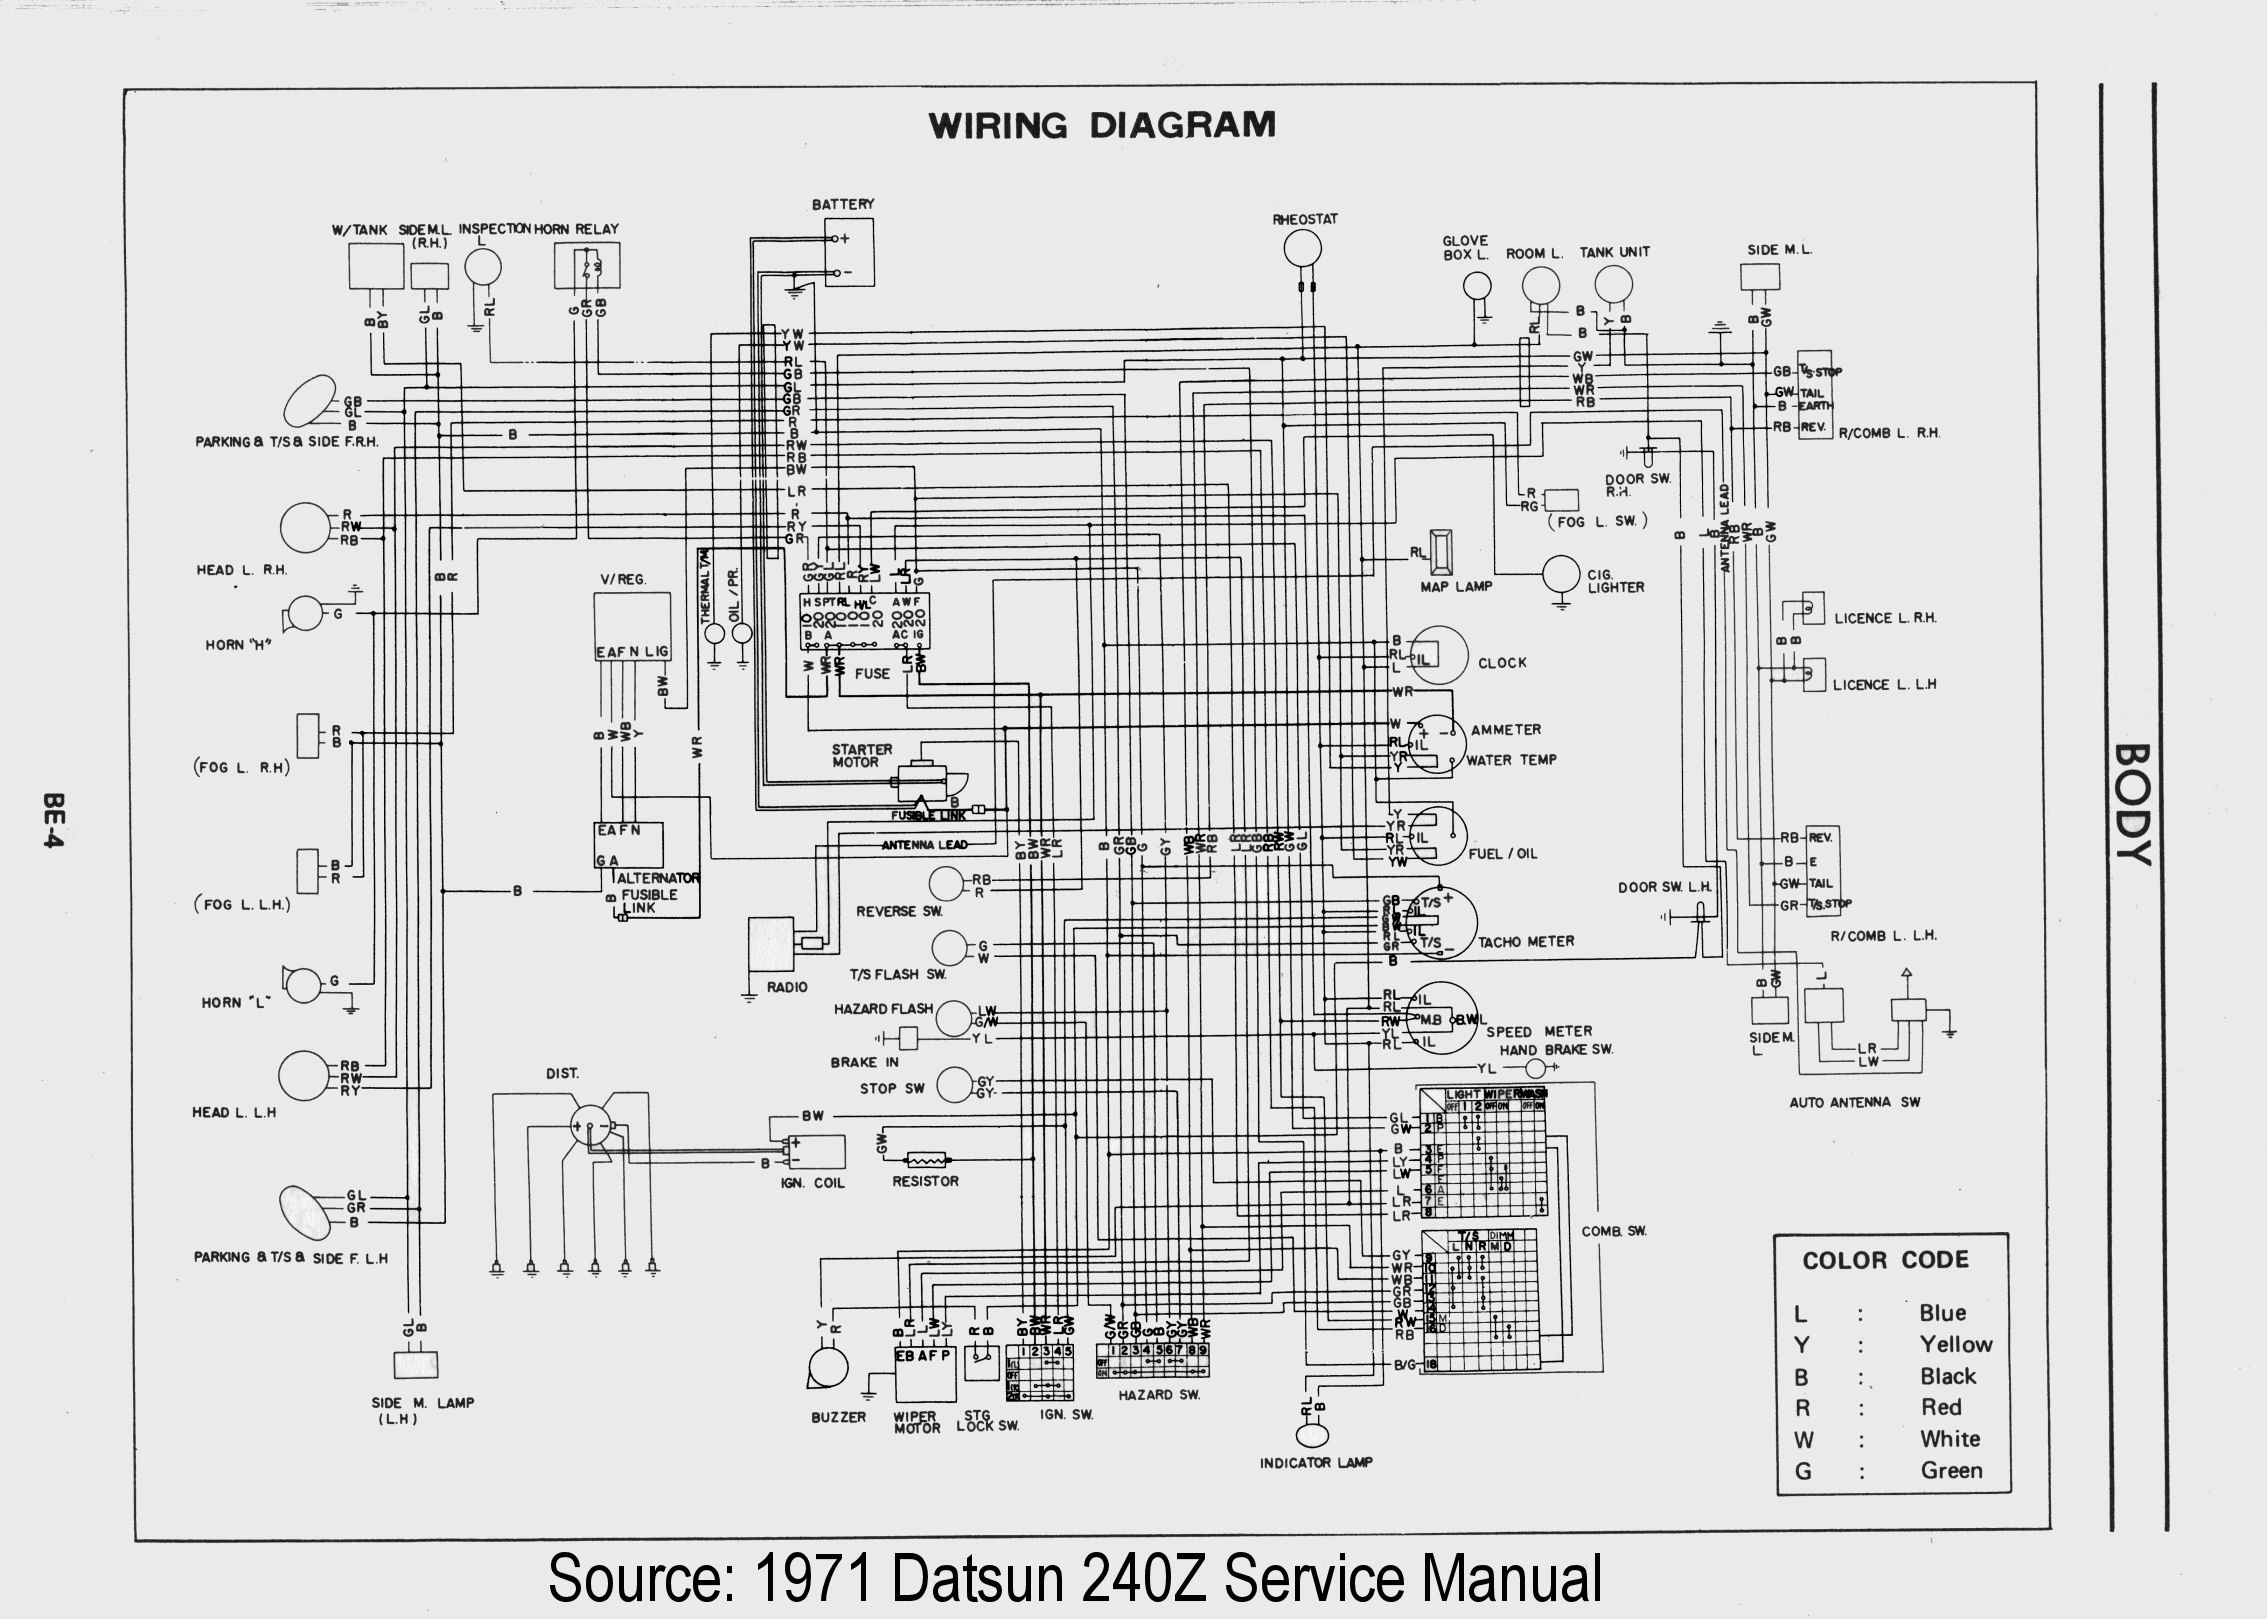 Wiring Diagram HiRes 2 240z wiring diagram 73 240z wiring diagram \u2022 wiring diagrams j In a 98 Dodge Dakota Wiring Harness at edmiracle.co